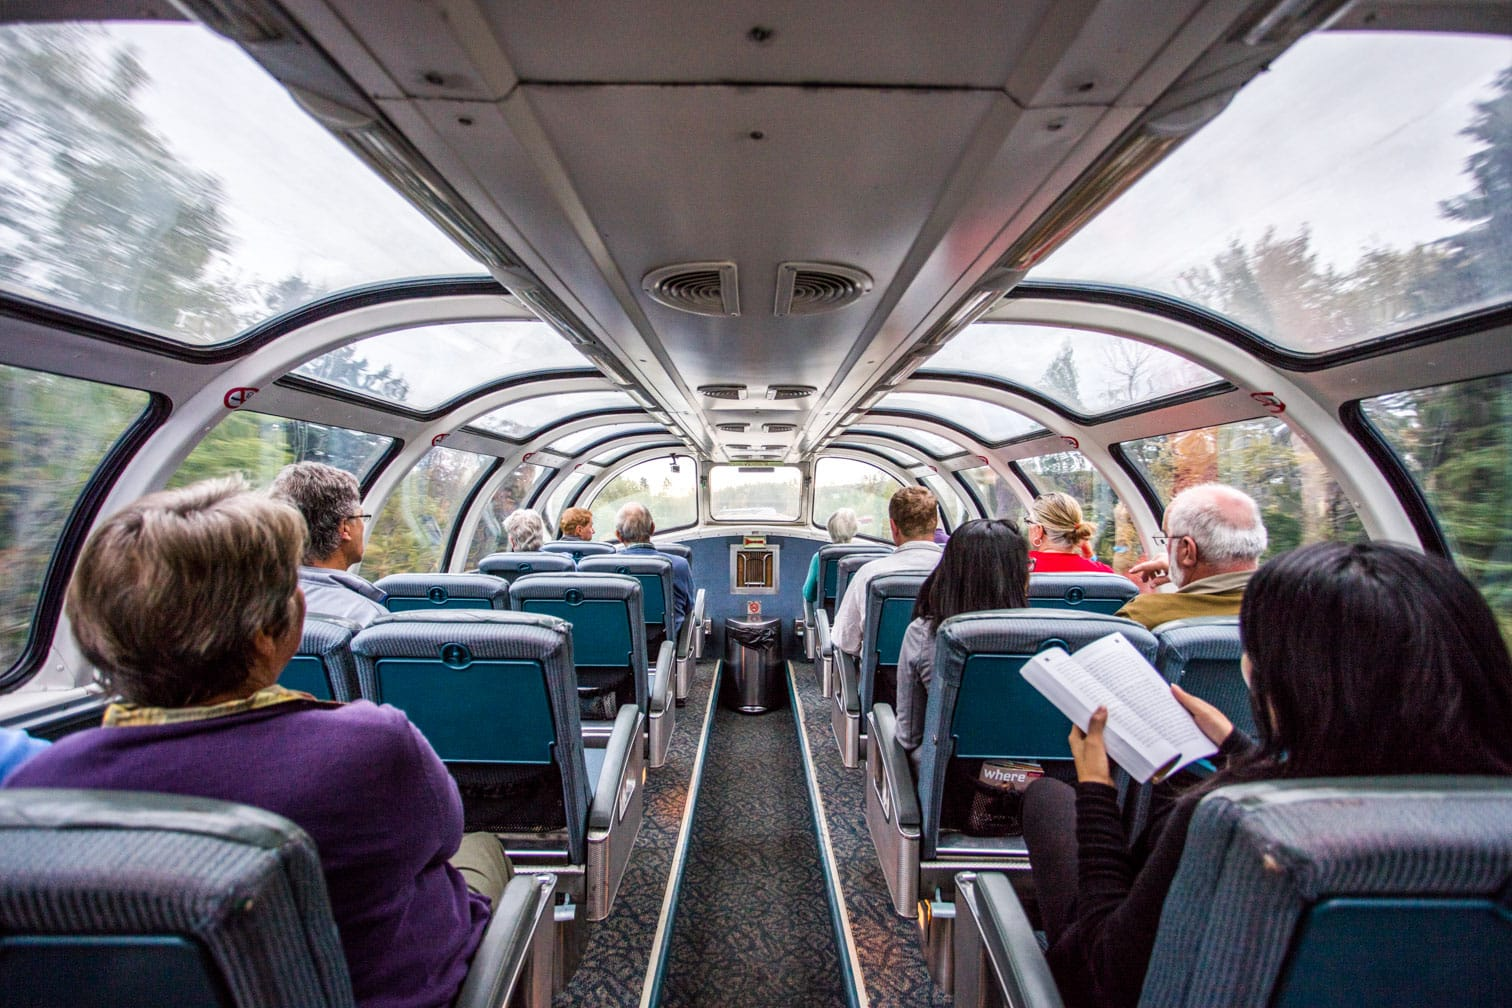 Passengers traveling on the Canadian train